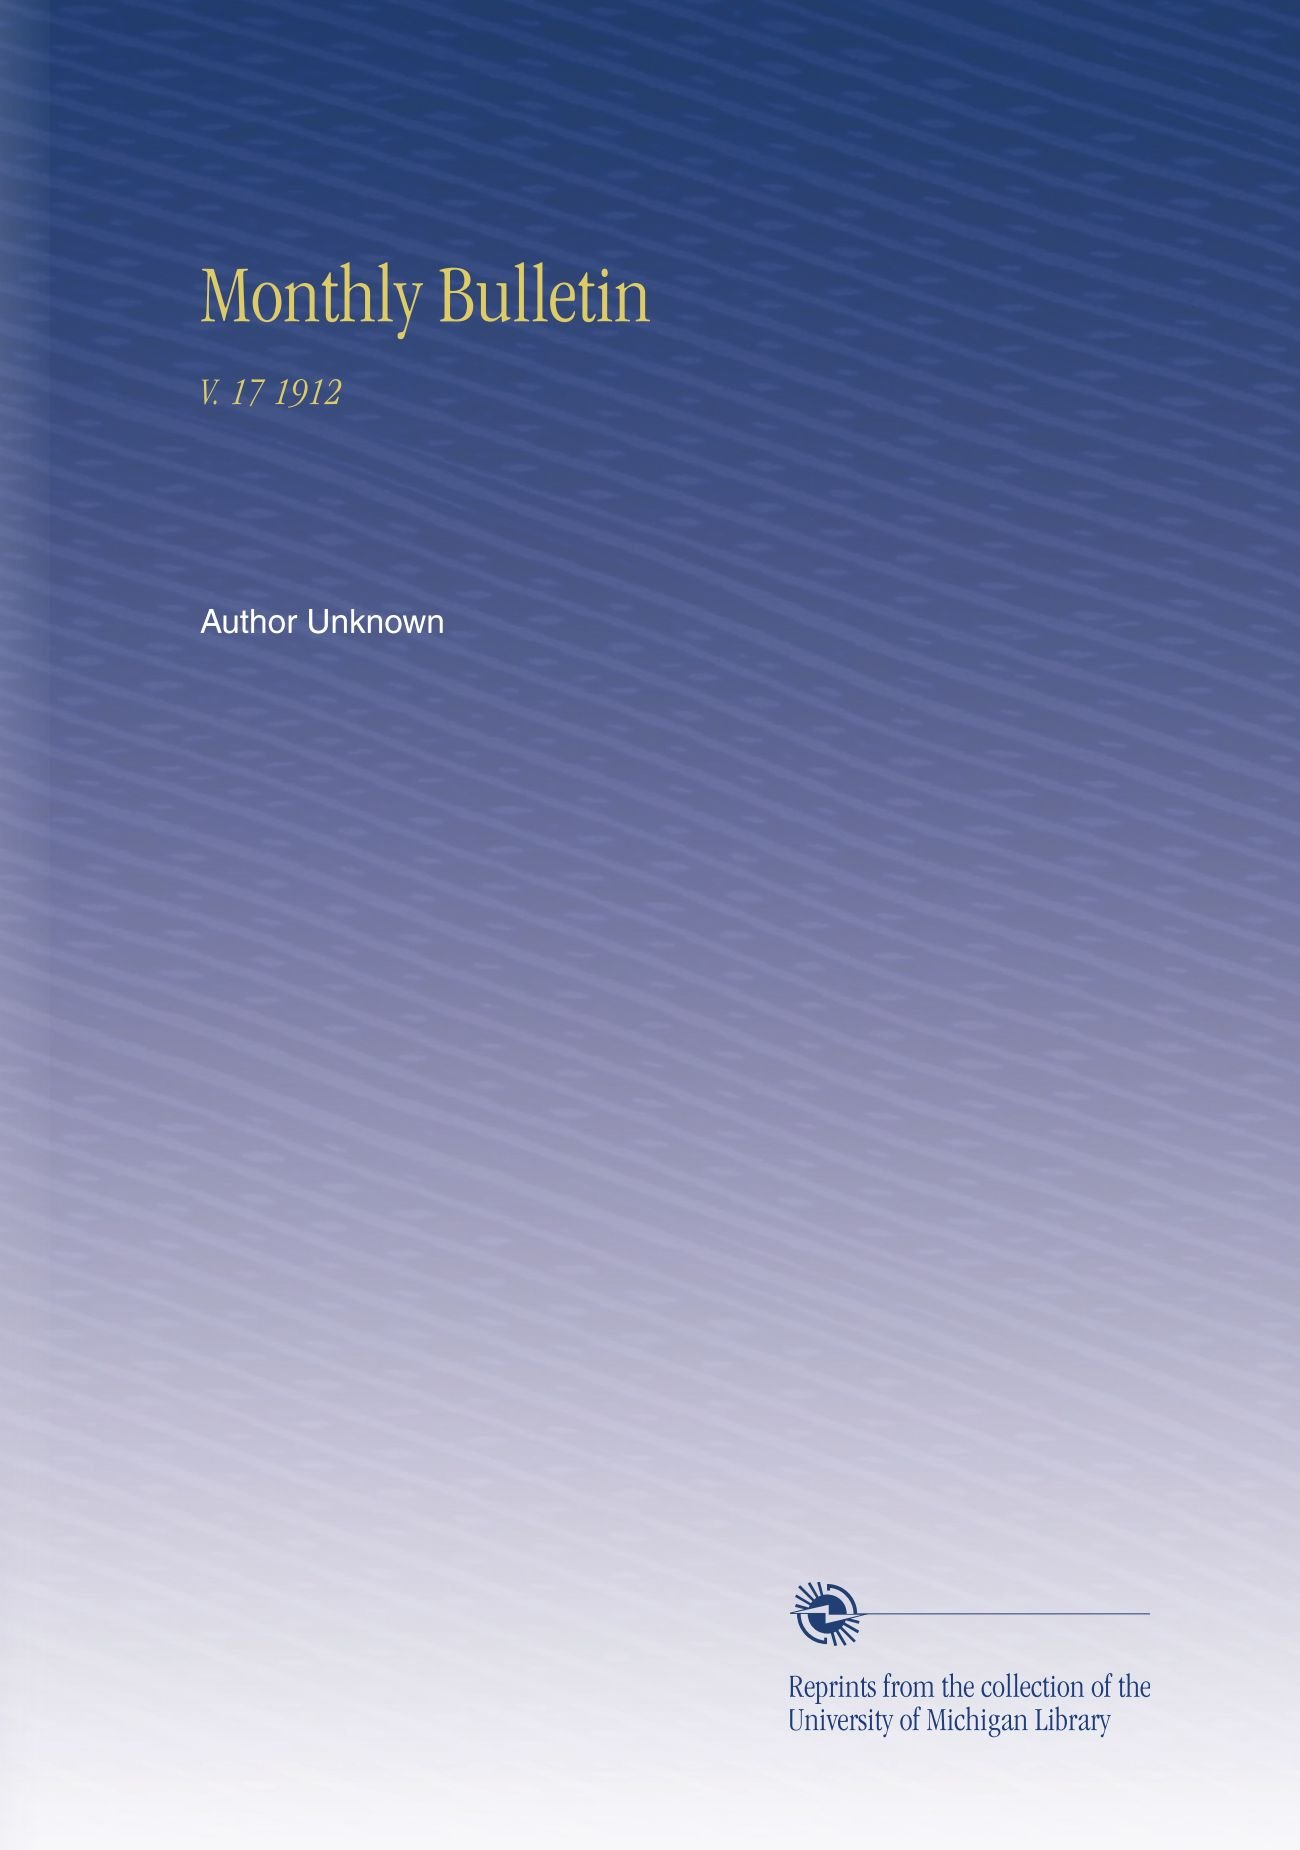 Download Monthly Bulletin: V. 17 1912 PDF